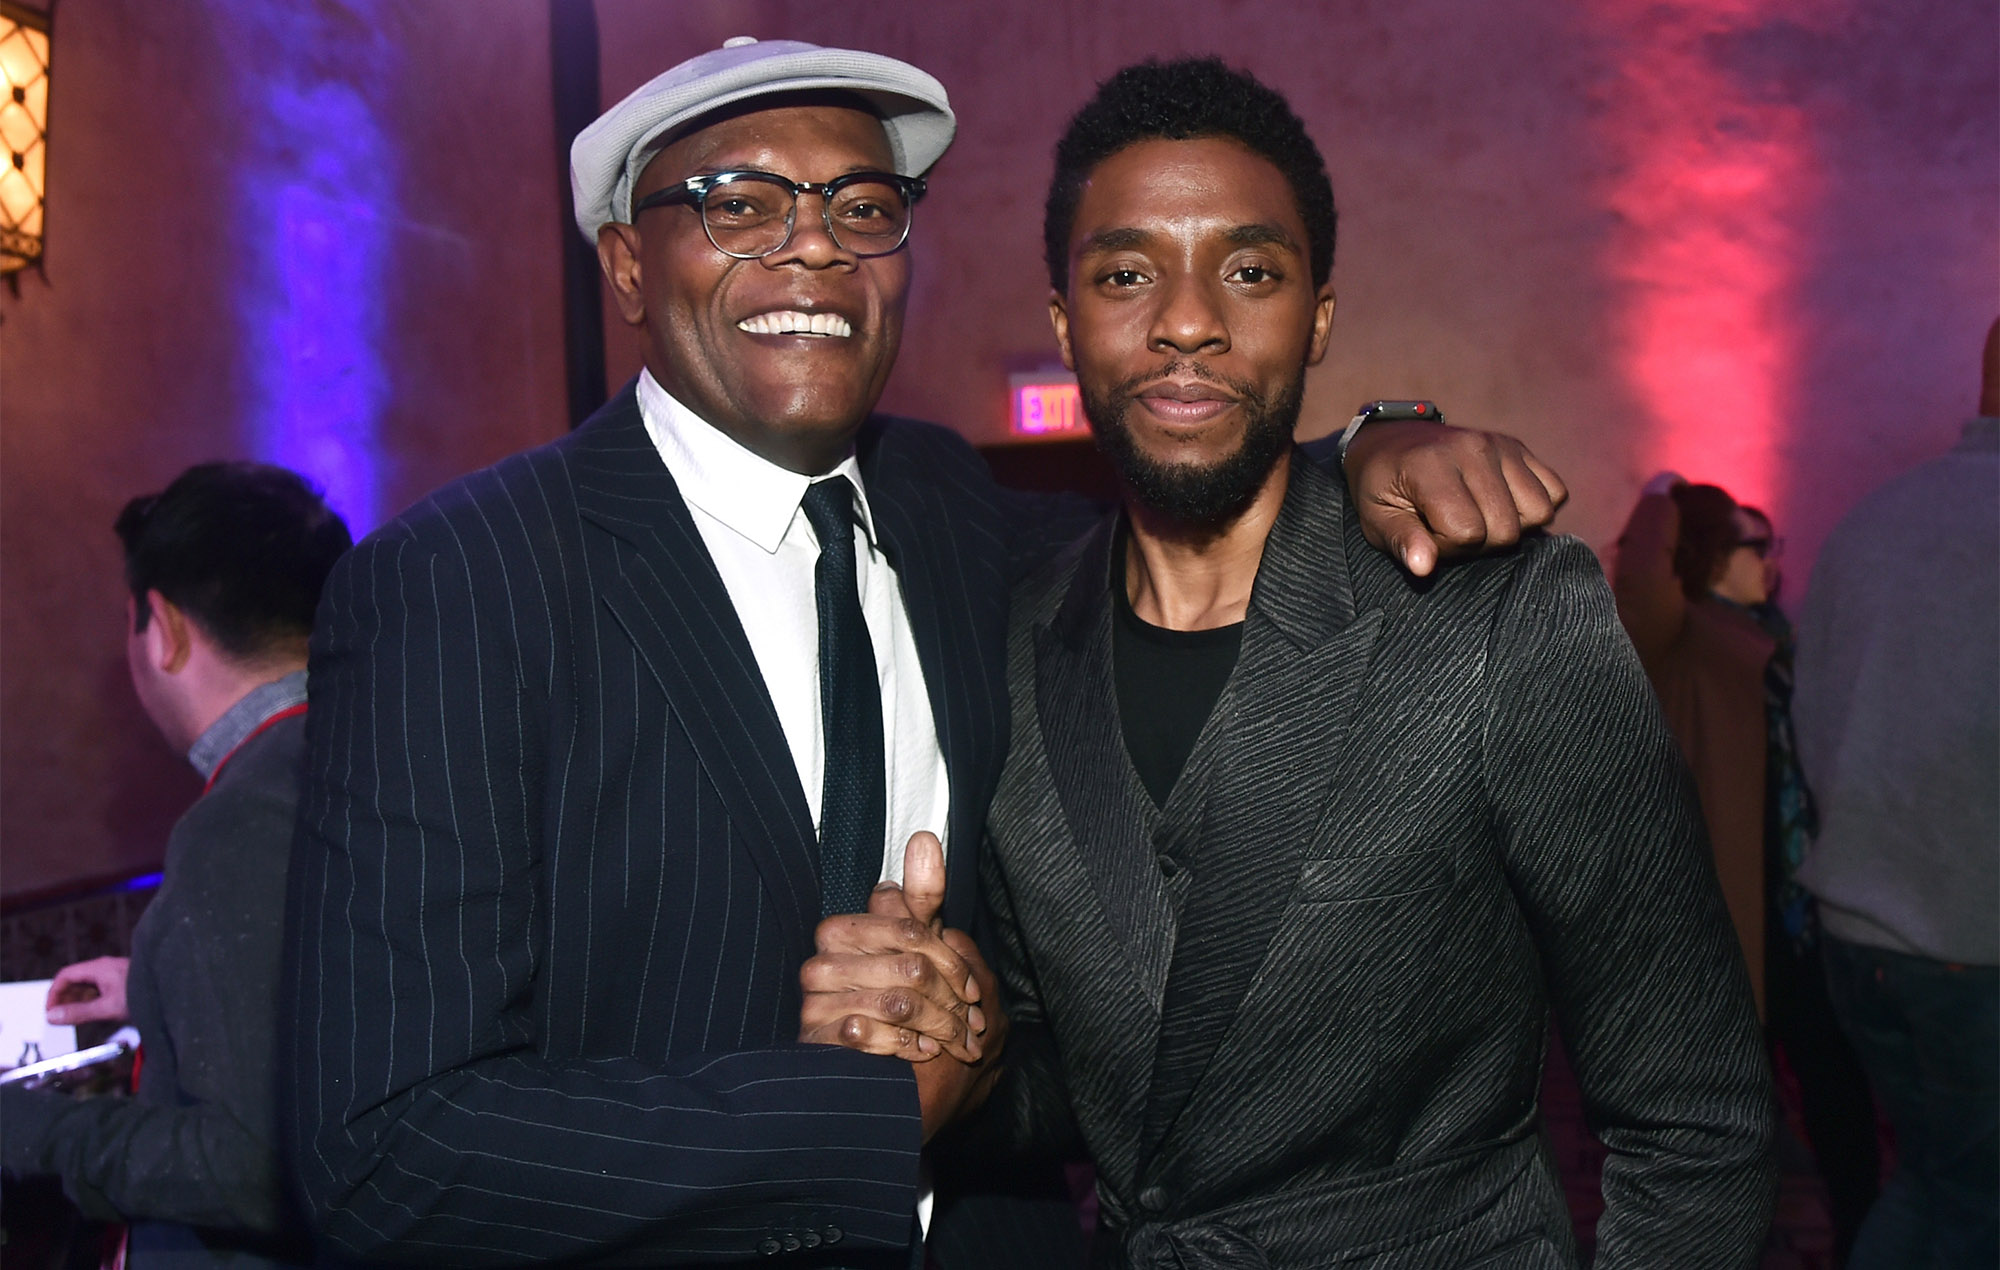 Samuel L Jackson Remembers Final Time He Saw Chadwick Boseman